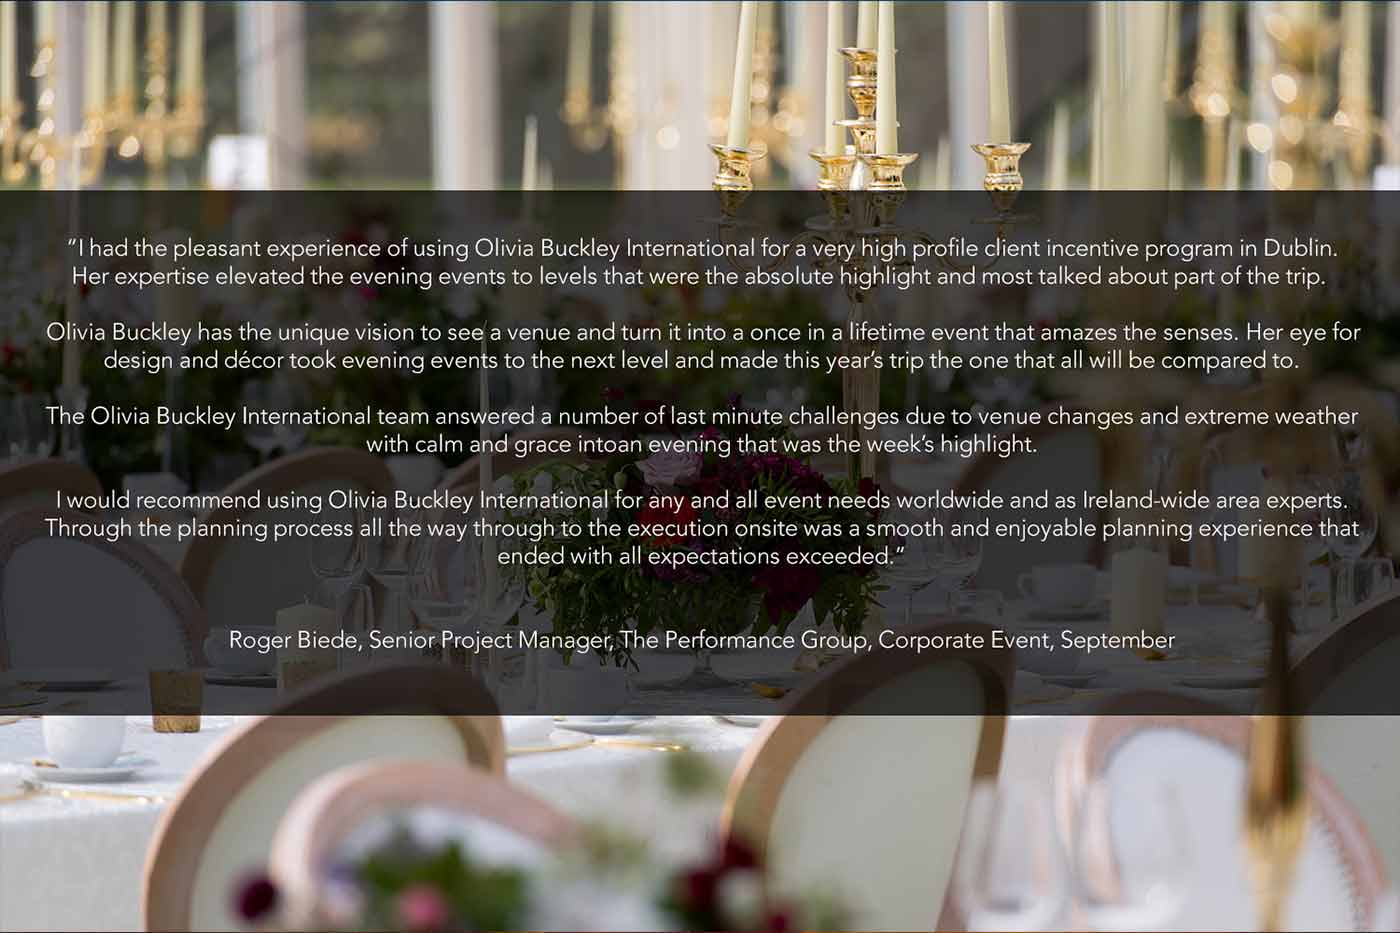 Event Planner in Ireland, Wedding Planner in Ireland, Destination Weddings, Olivia Buckley International